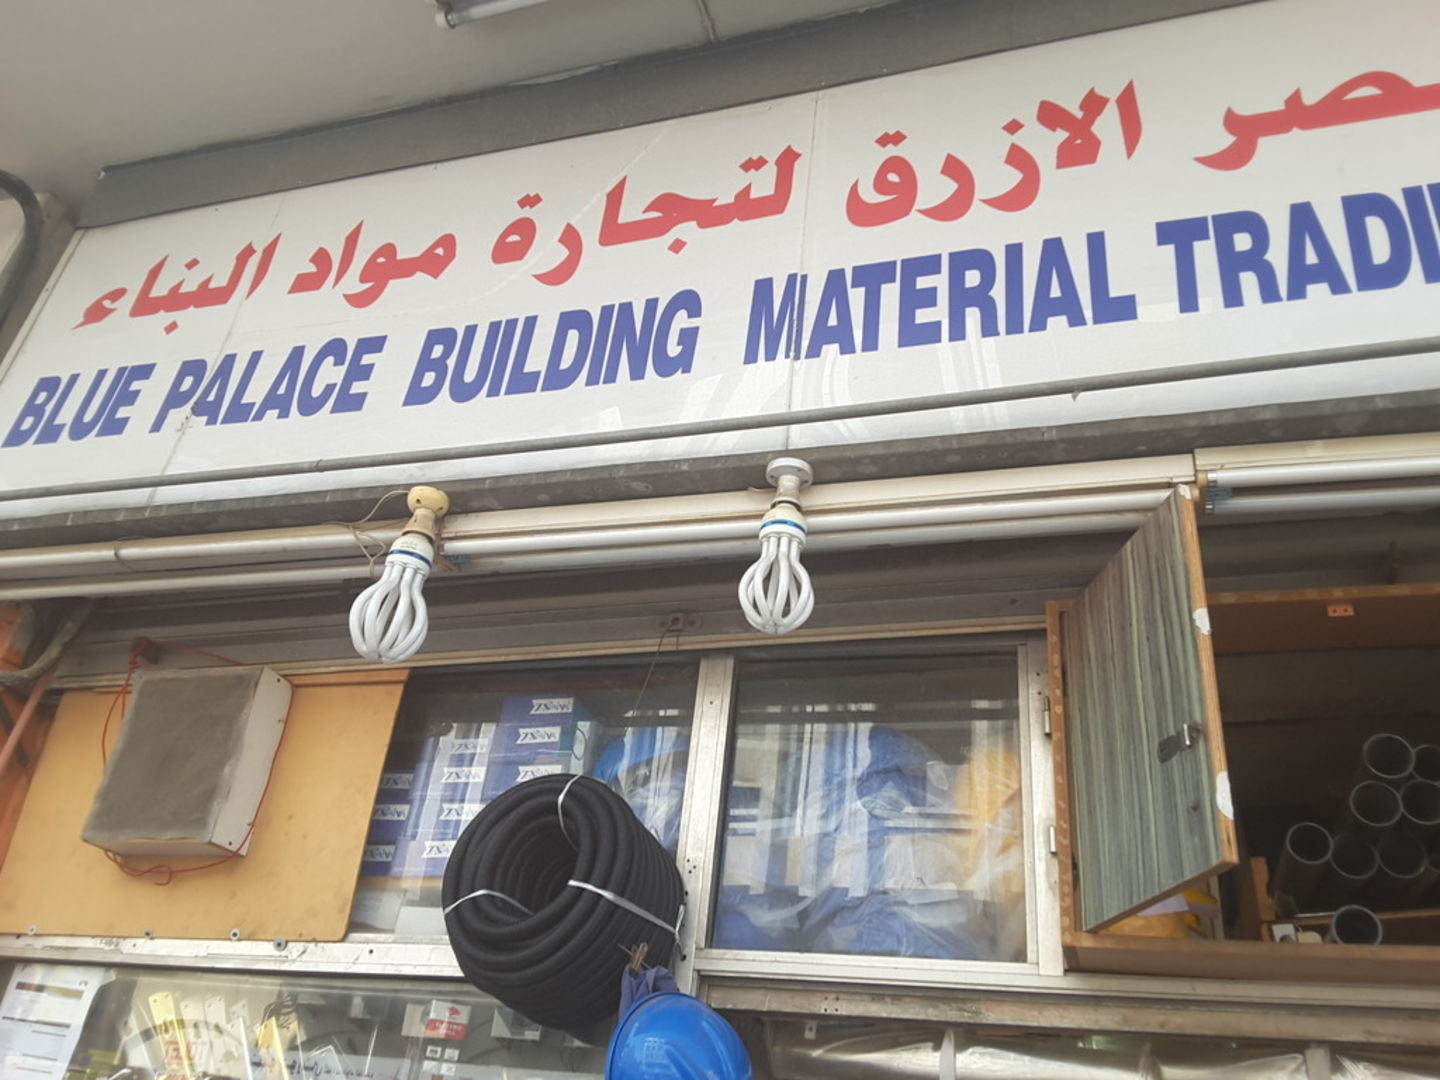 HiDubai-business-blue-palace-building-material-trading-b2b-services-construction-building-material-trading-naif-dubai-2